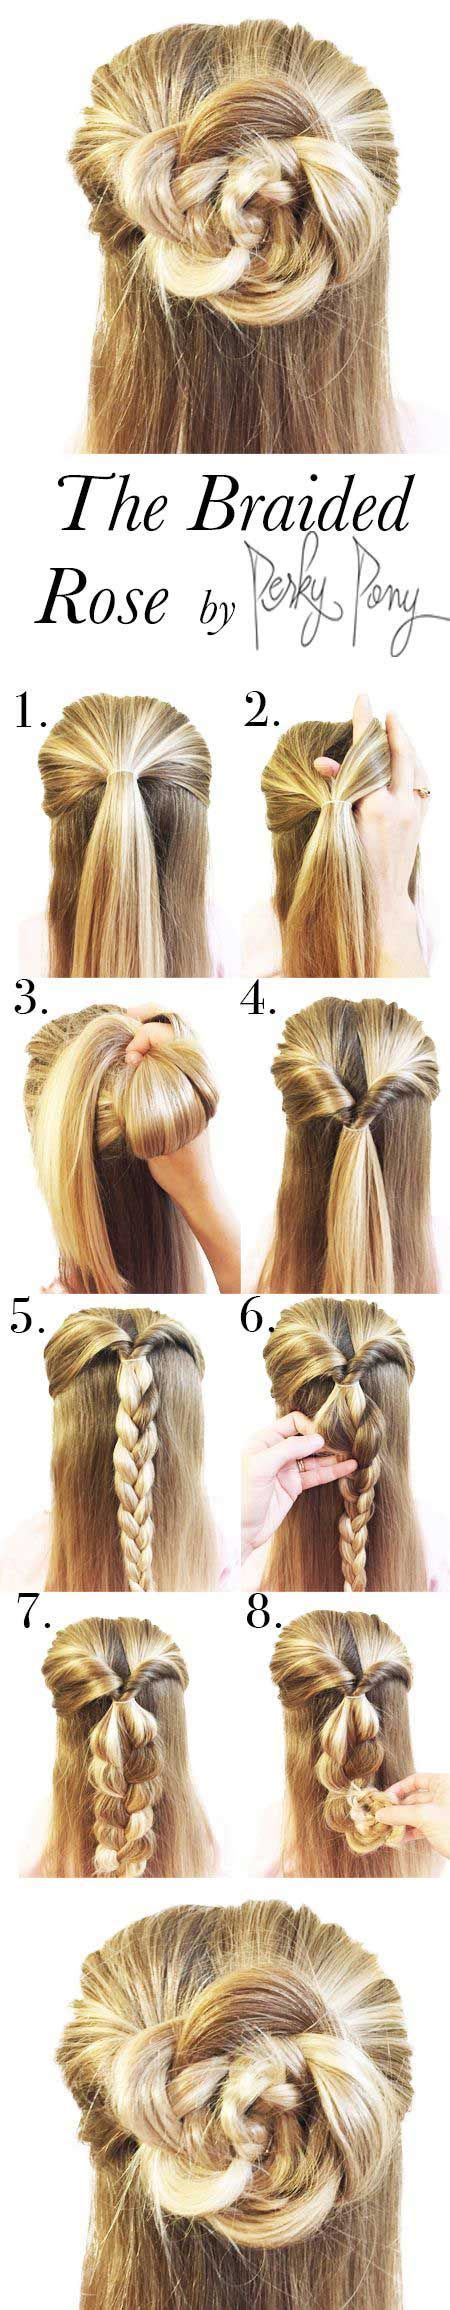 rose hairstyle half up half down 18 half up half down hairstyle tutorials perfect for prom